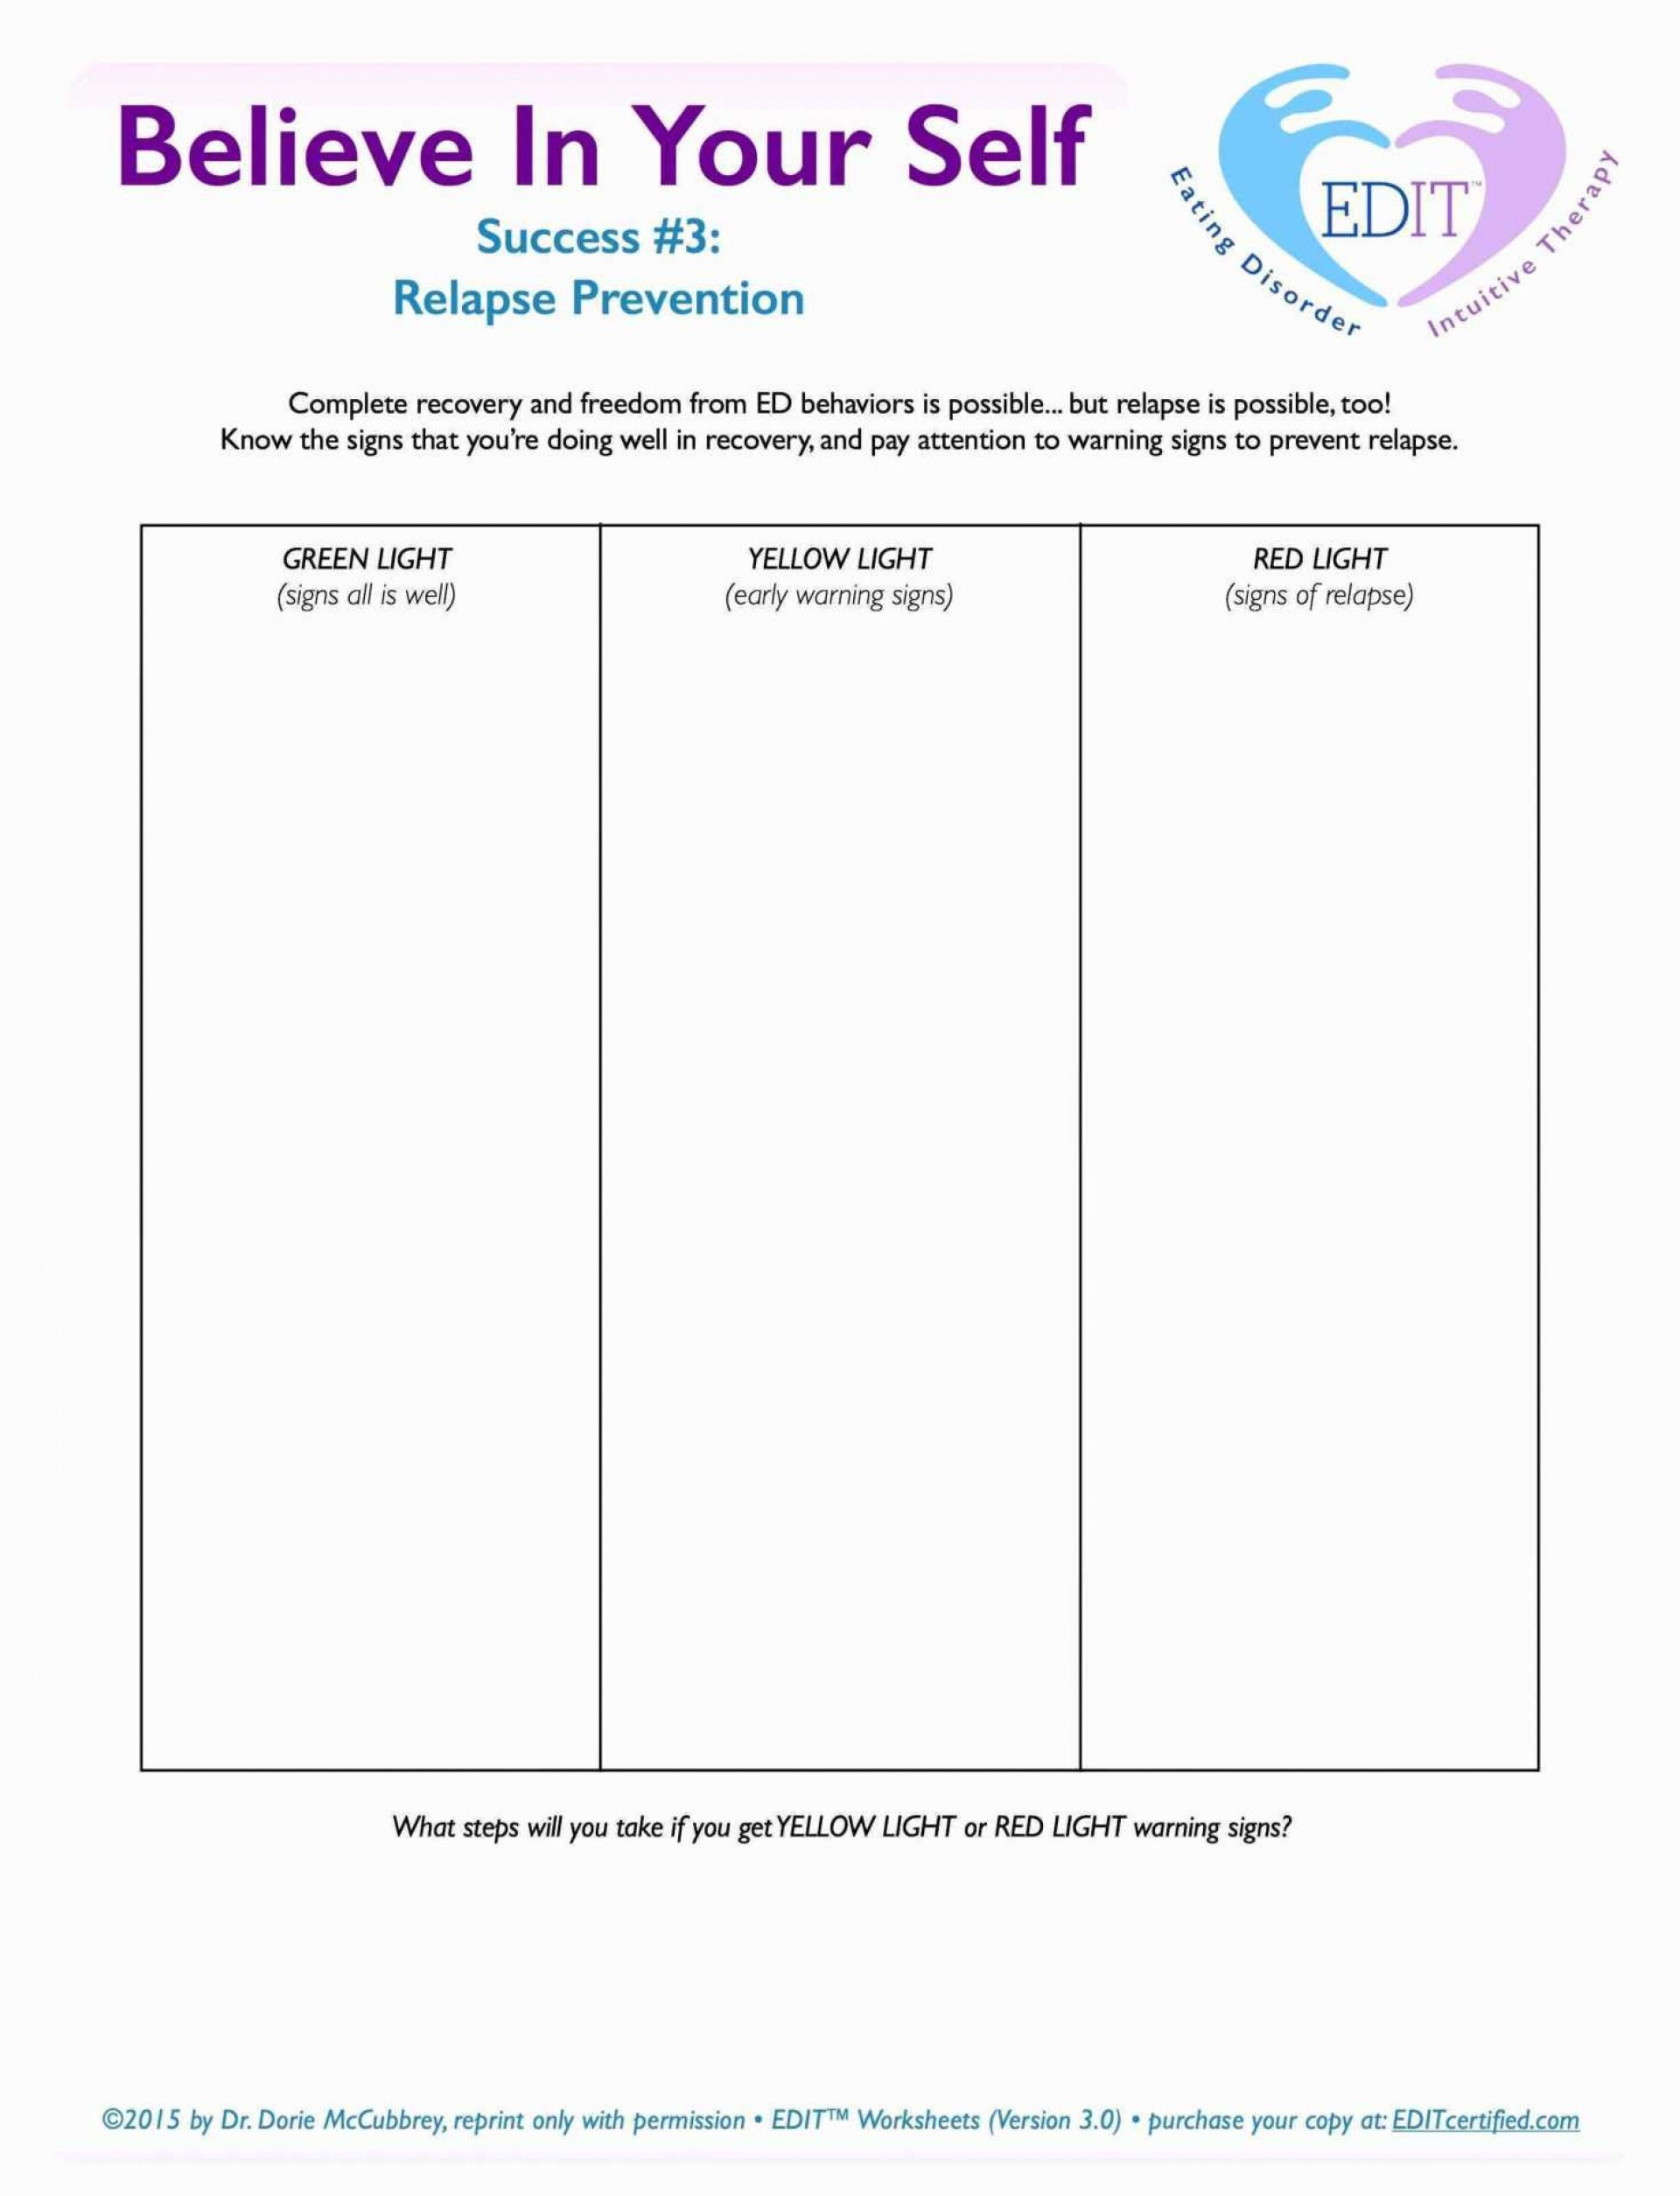 002 Plan S Substance Abuse Relapse Prevention